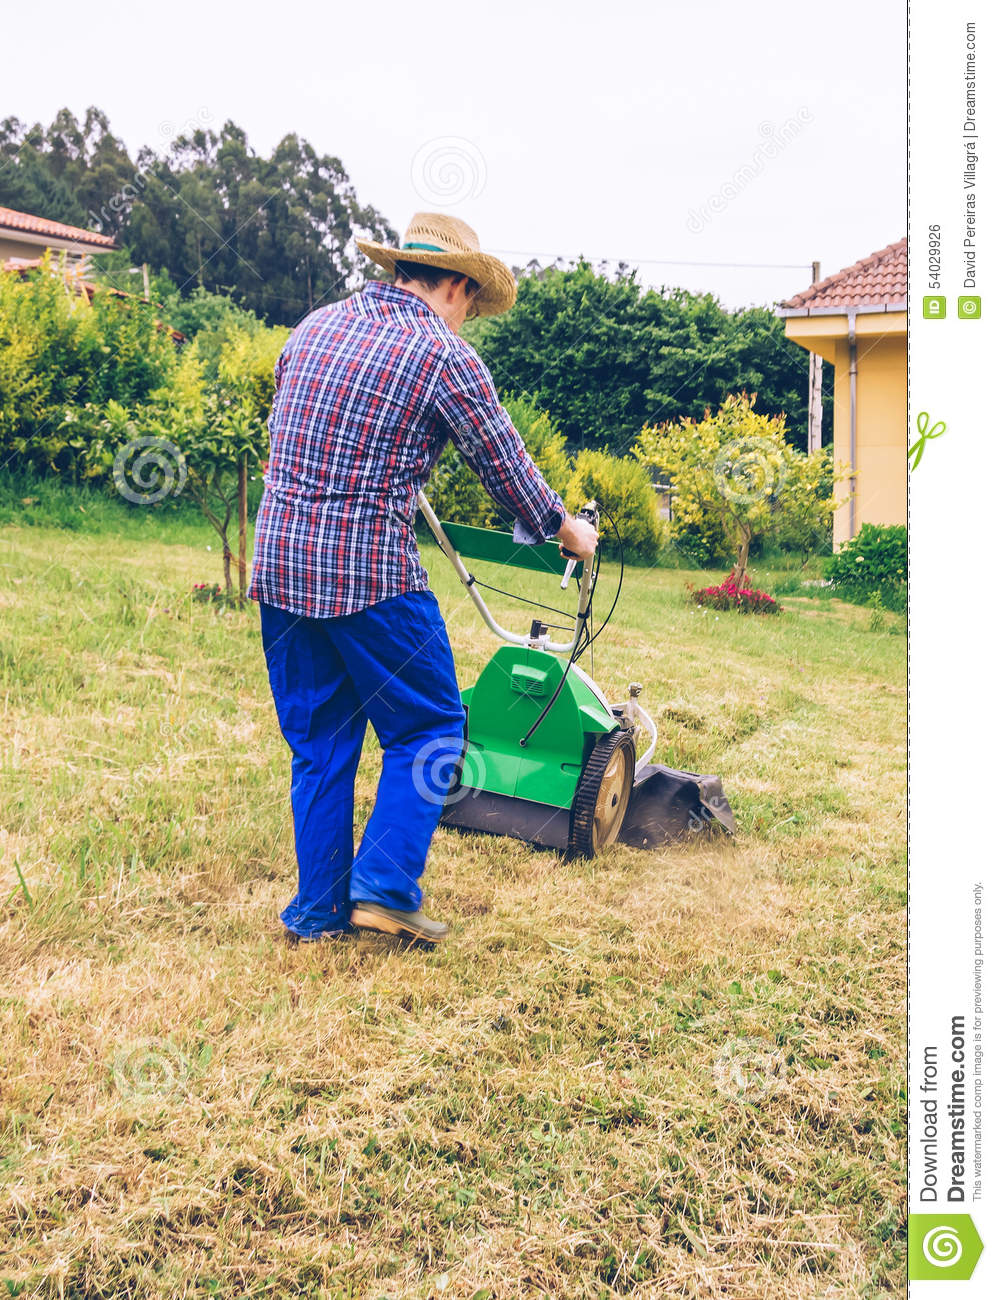 Young Man Cutting Grass With A Push Lawn Mower Cartoon